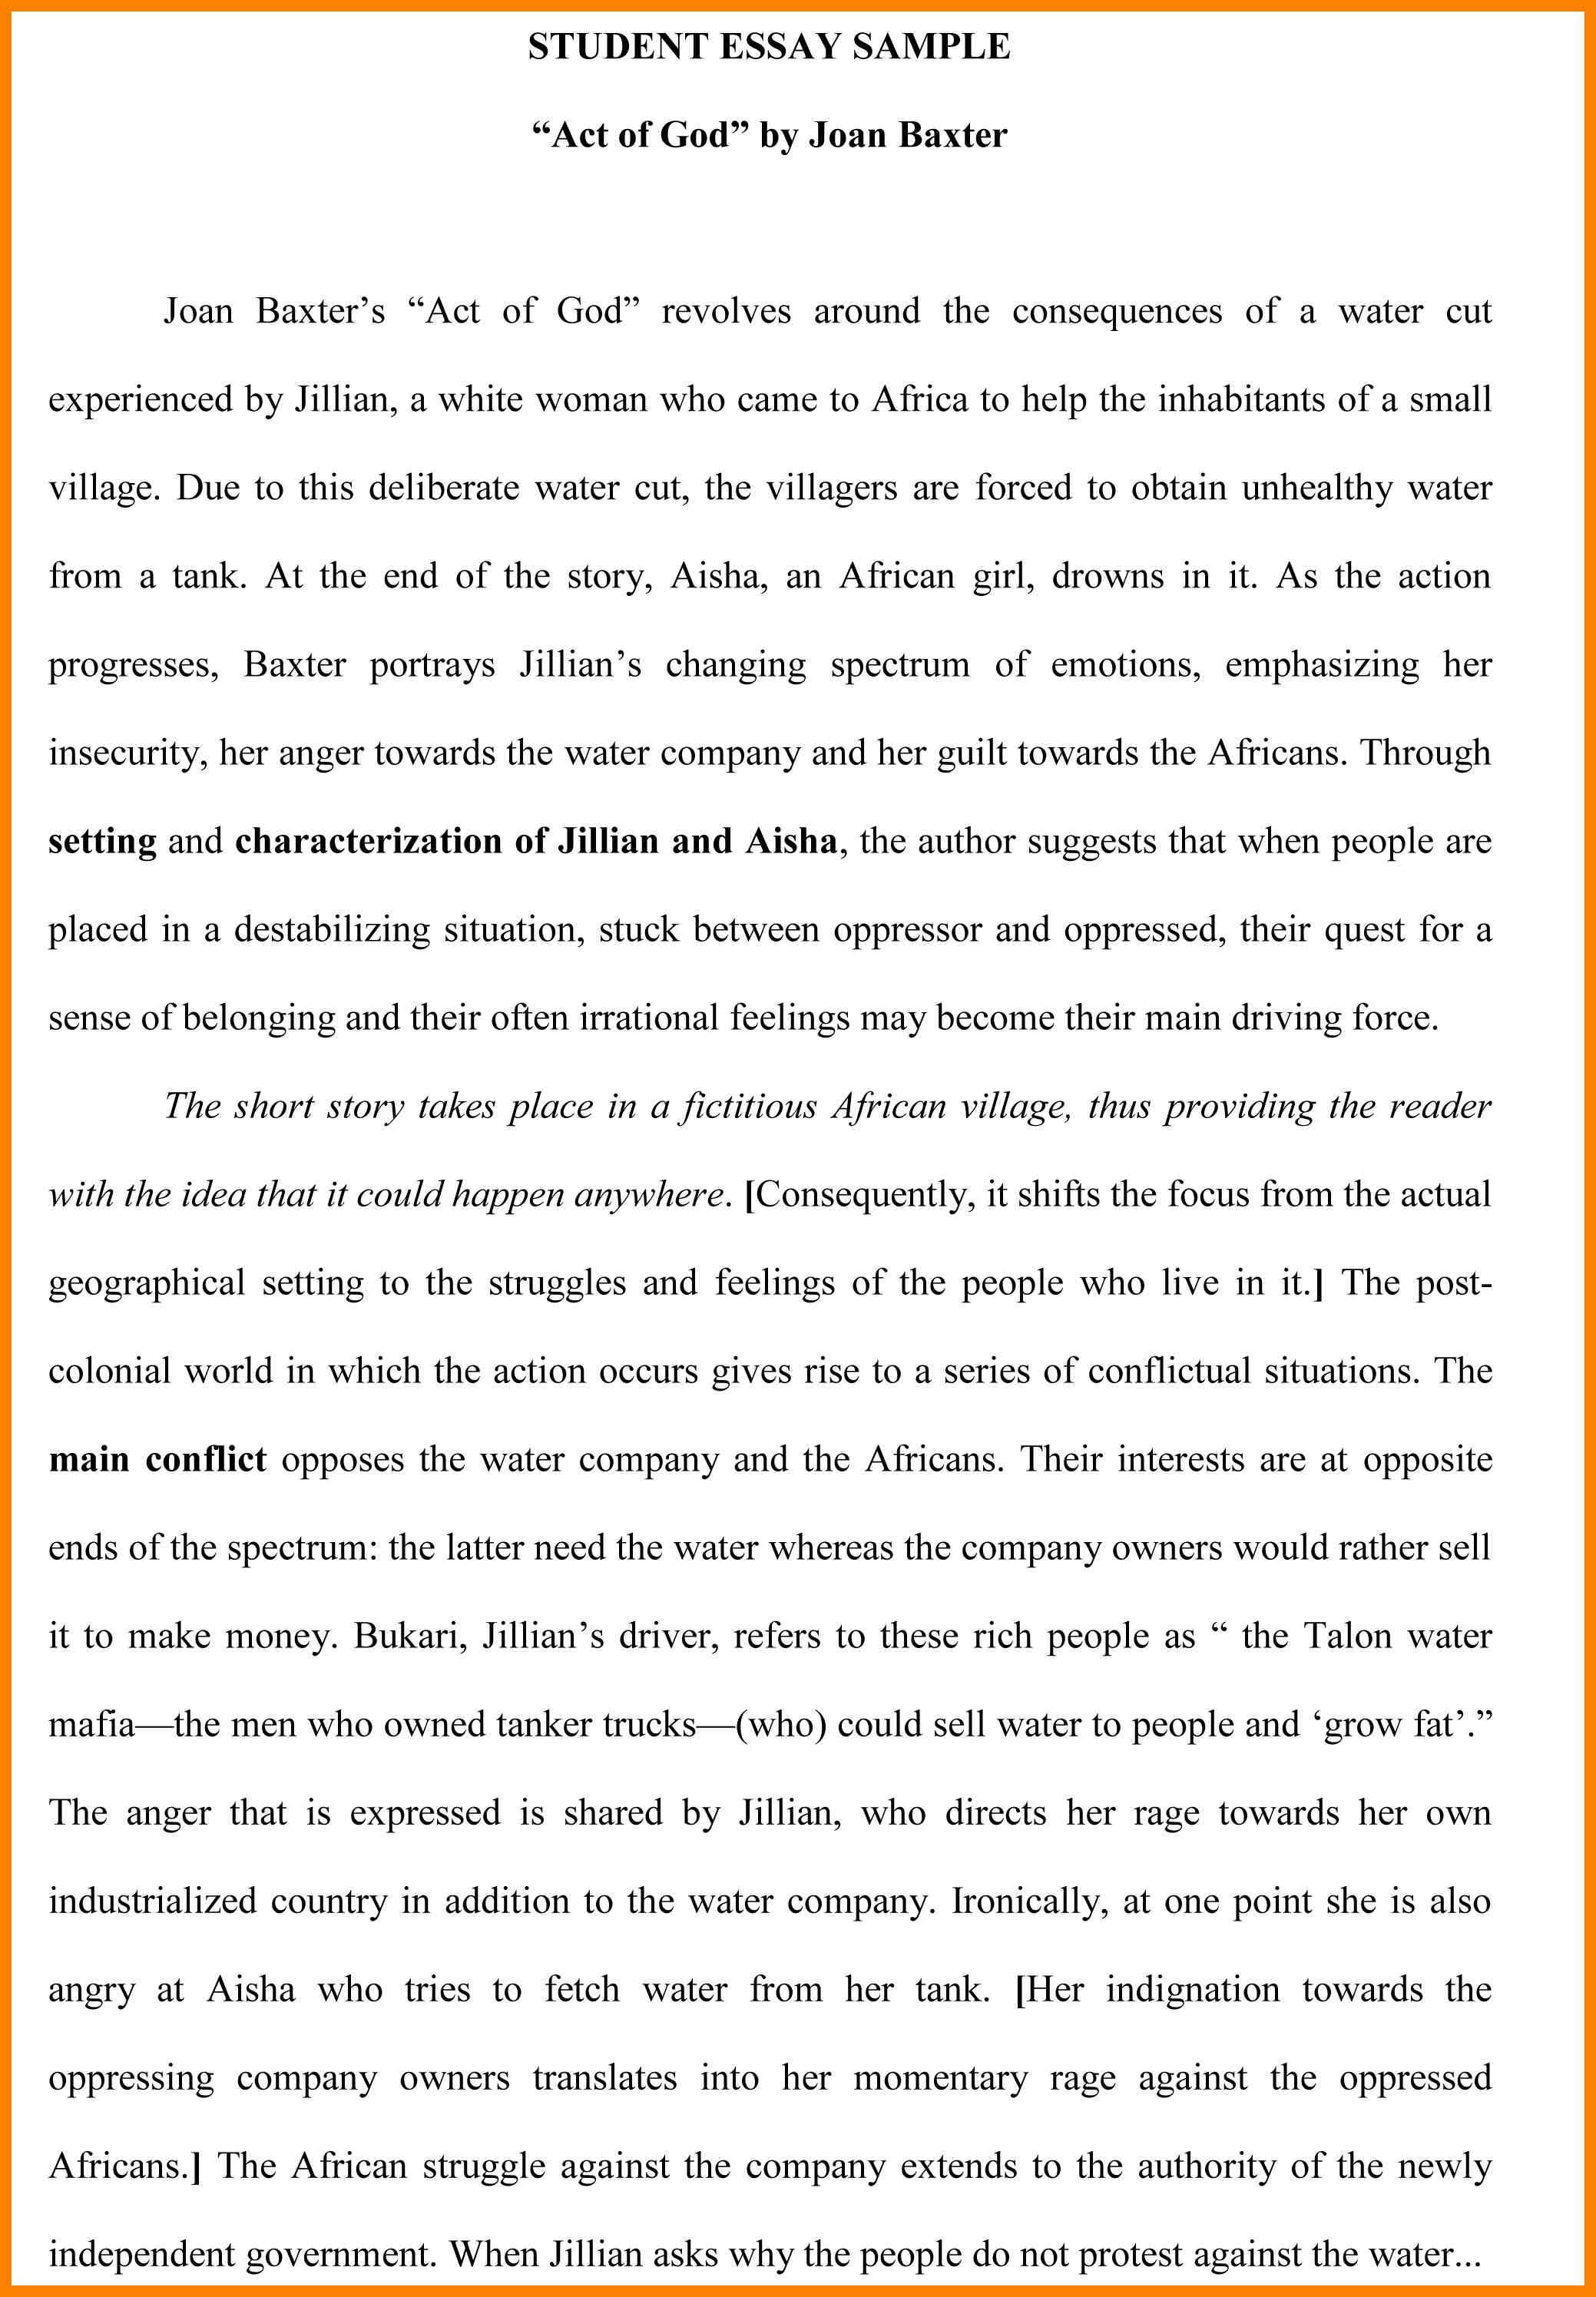 002 Examples Of Process Essays Pdf Essay Example College St Paper Sample Samples Ielts Topics How To Bake Cake Processchronological Stupendous Photo High School Tagalog For Students Full